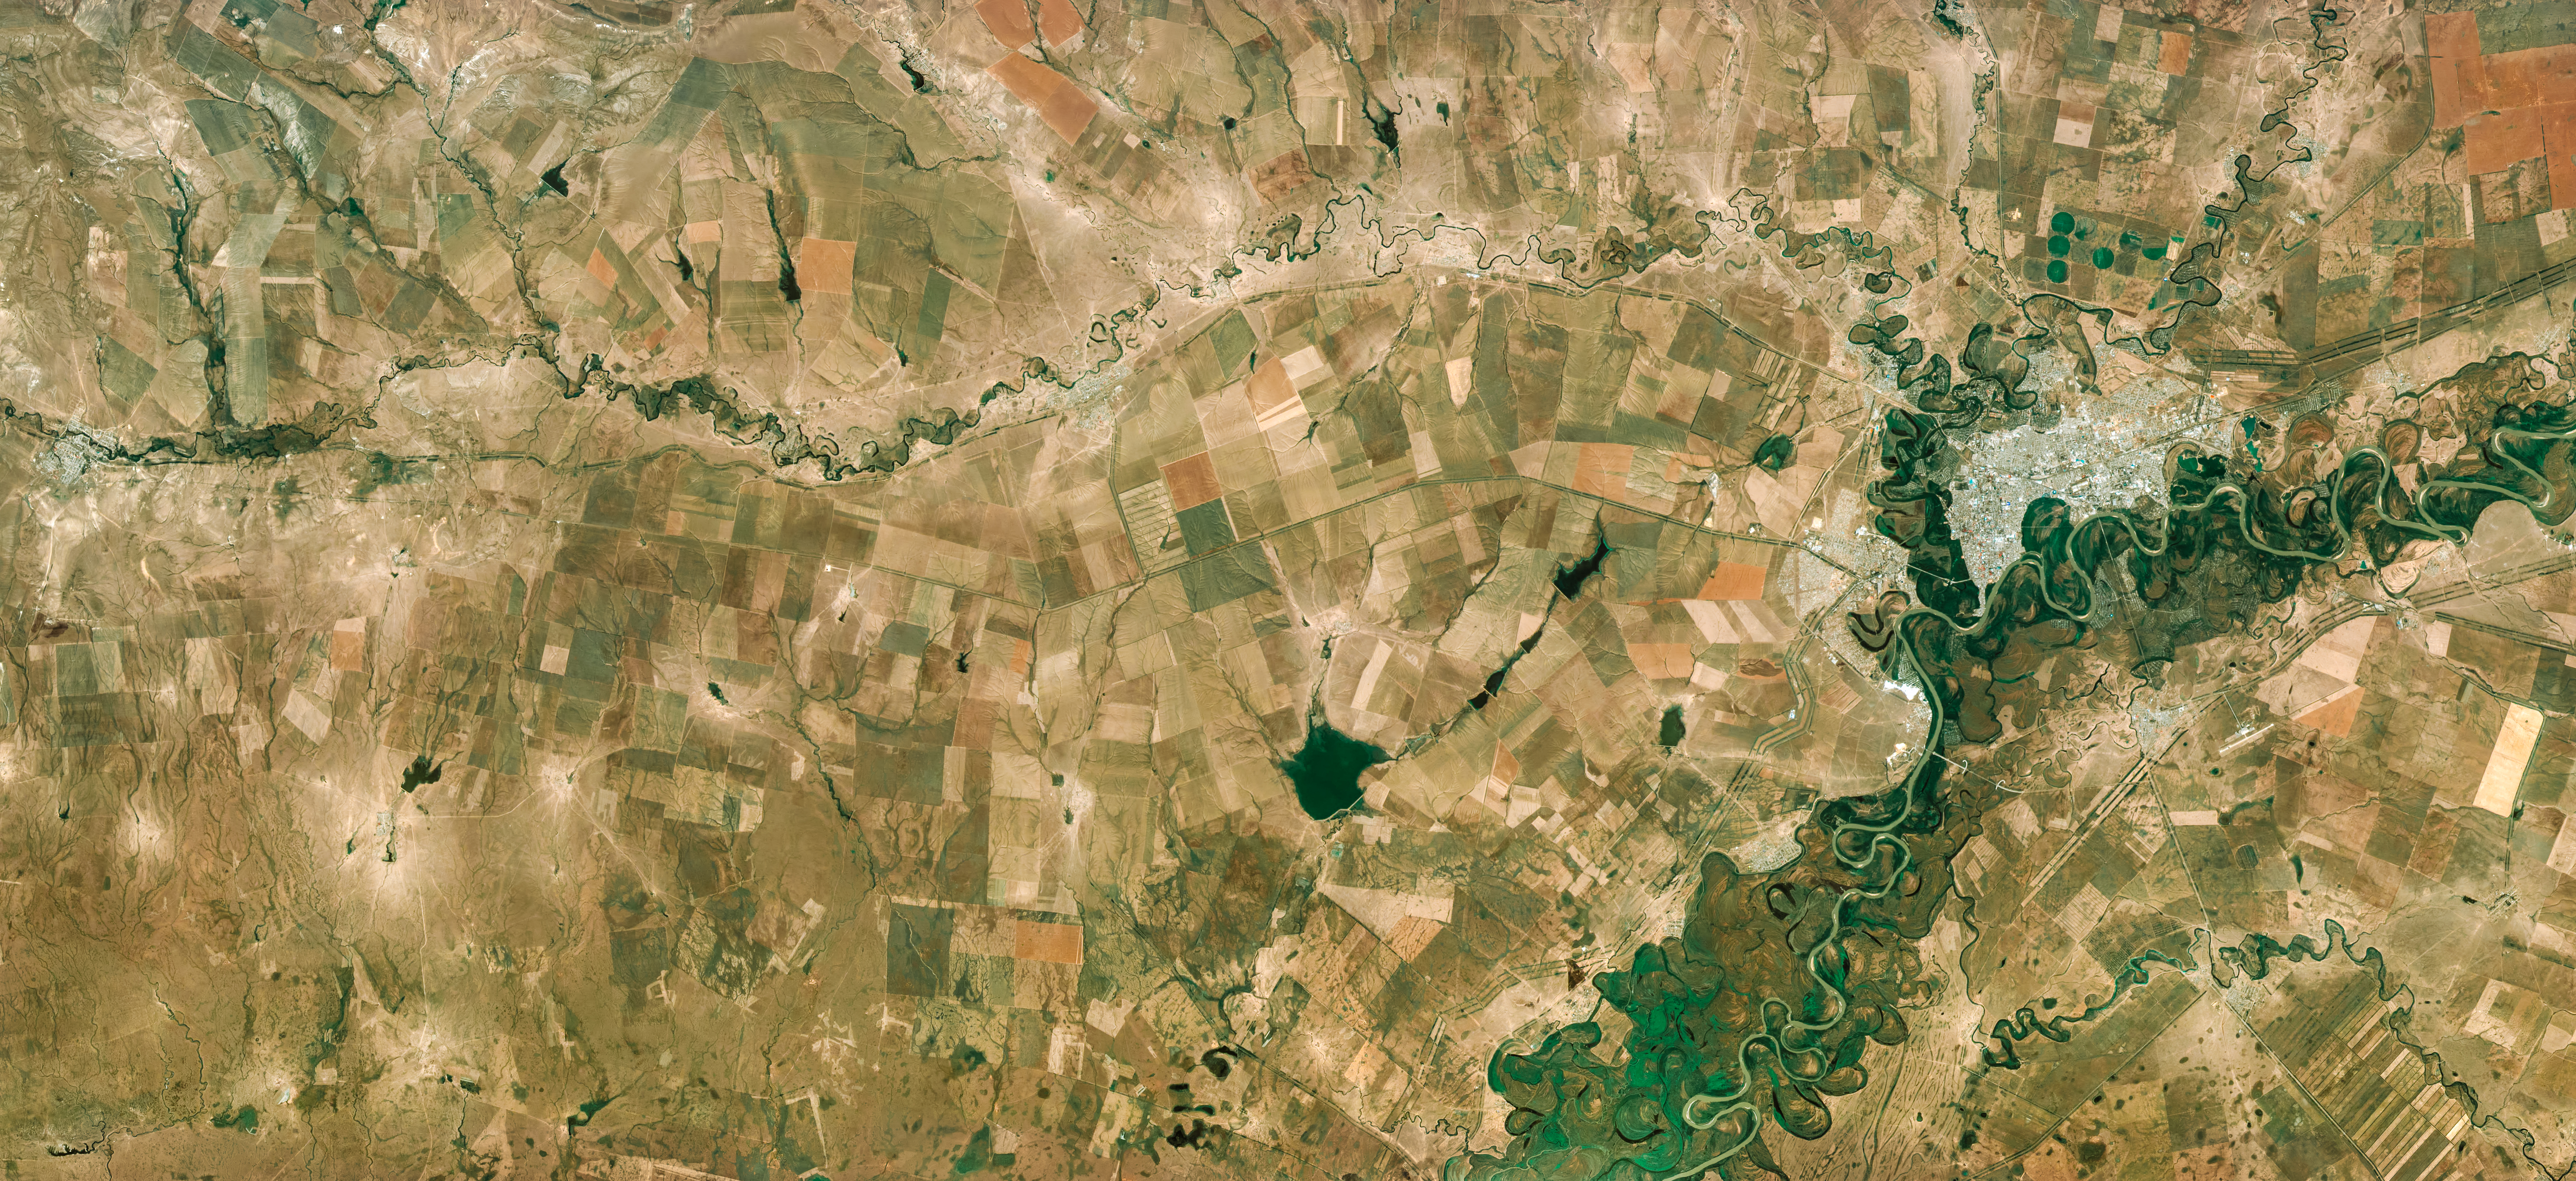 Twists and turns of the ural river by urthecast gallery ural river kazakhstan publicscrutiny Images